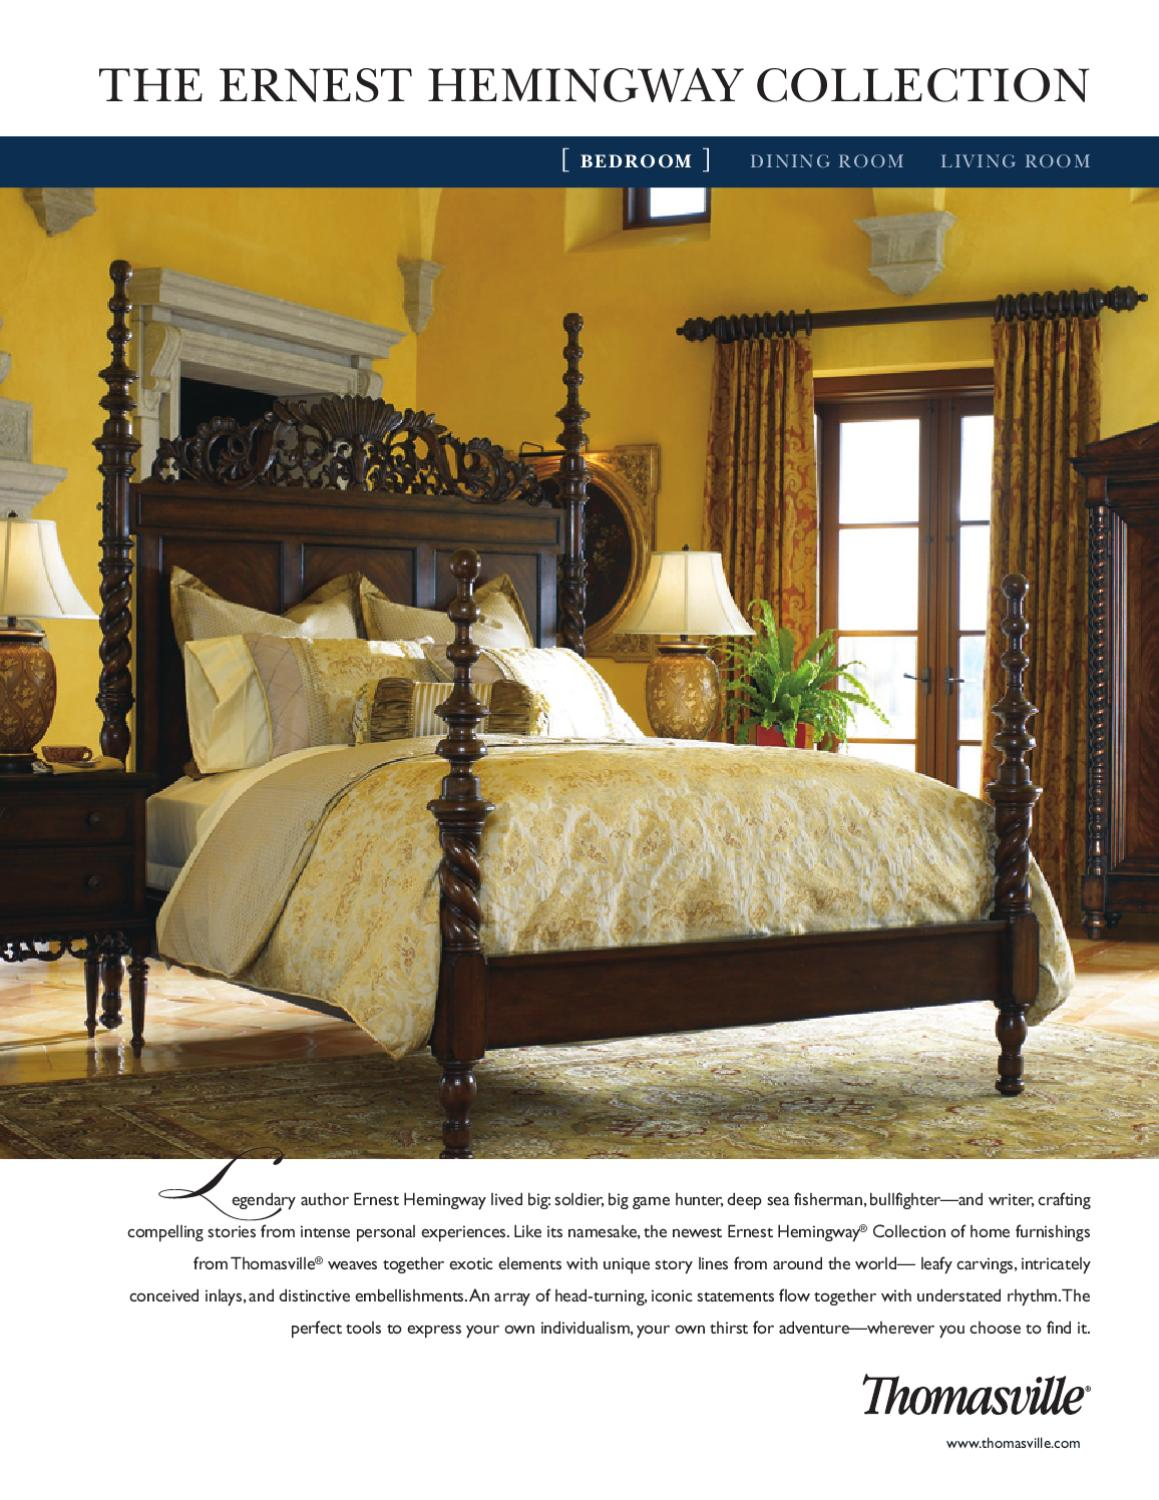 Awesome Thomasville  The Ernest Hemingway Collection (Bedroom) By Cadieux U0026 Company    Issuu